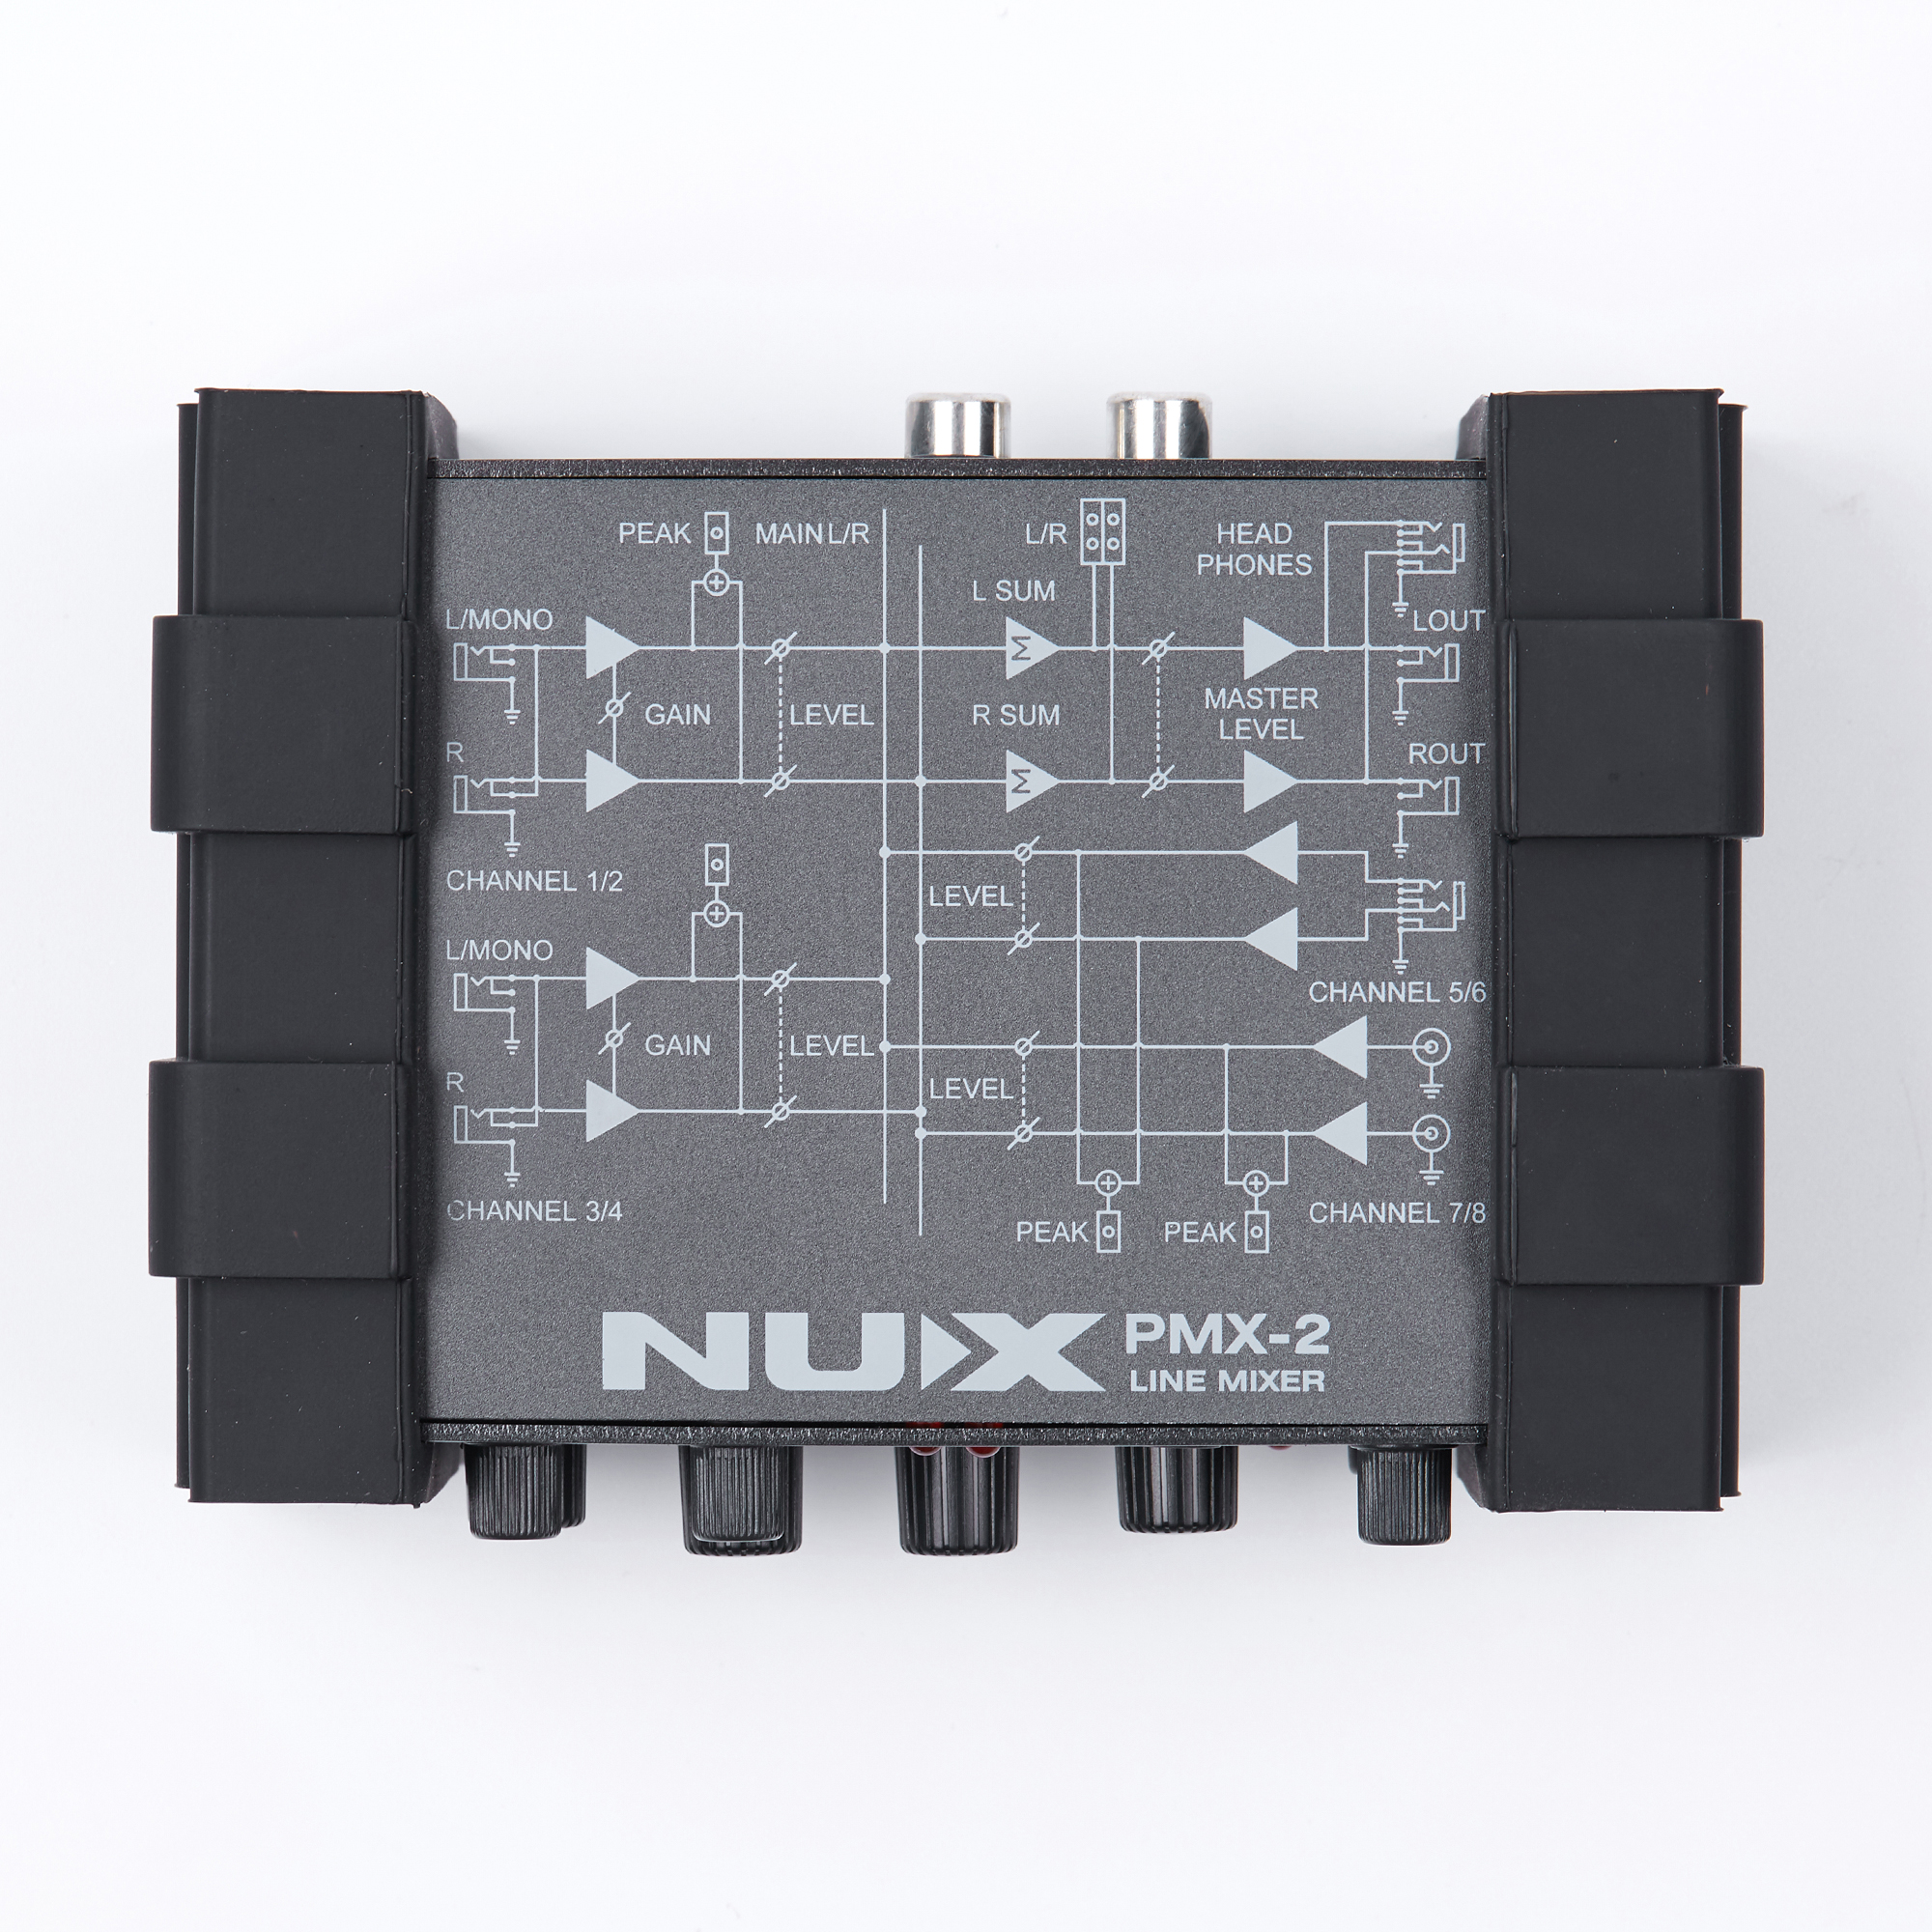 Gain Control 8 Inputs and 2 Outputs NUX PMX-2 Multi-Channel Mini Mixer 30 Musical Instruments Accessories for Guitar Bass Player соковыжималка polaris pea 0930 900 вт пластик красный